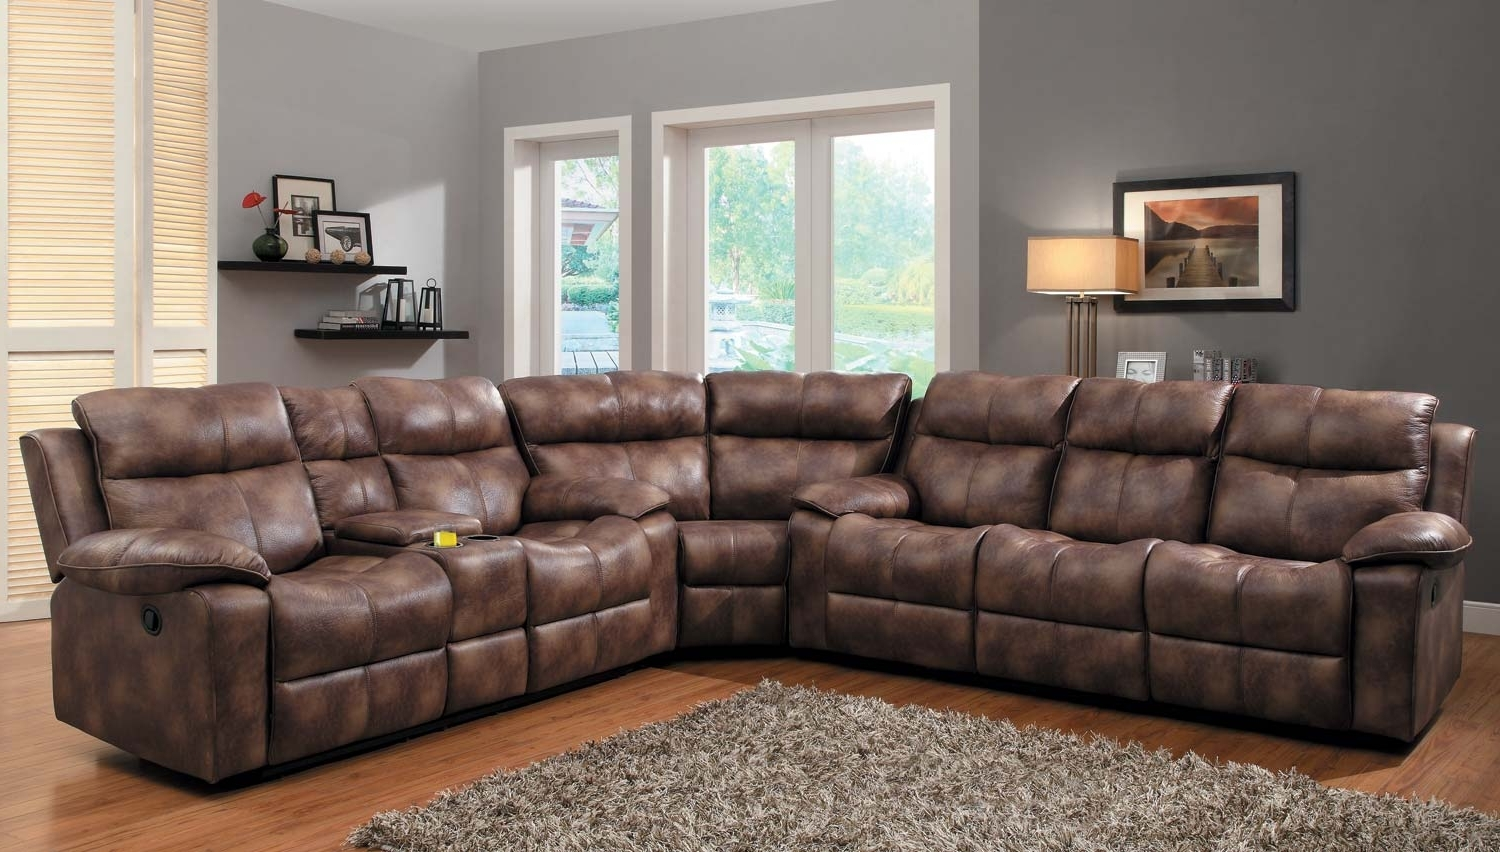 Sectional Sofas Dallas – Tourdecarroll For Latest Dallas Sectional Sofas (View 13 of 15)